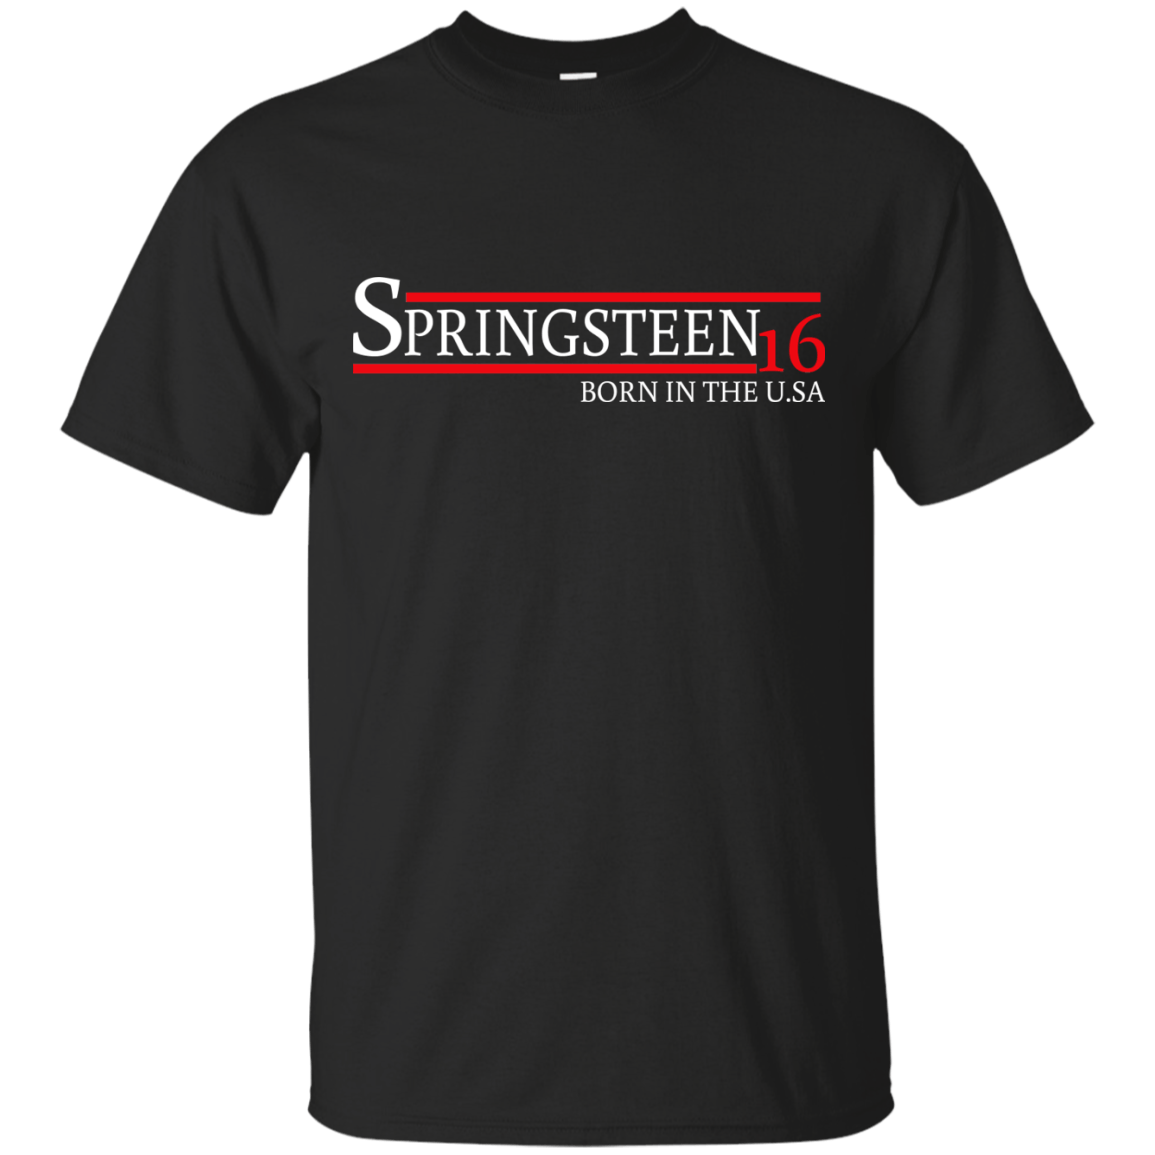 Springsteen for president 2016 t shirt & hoodies